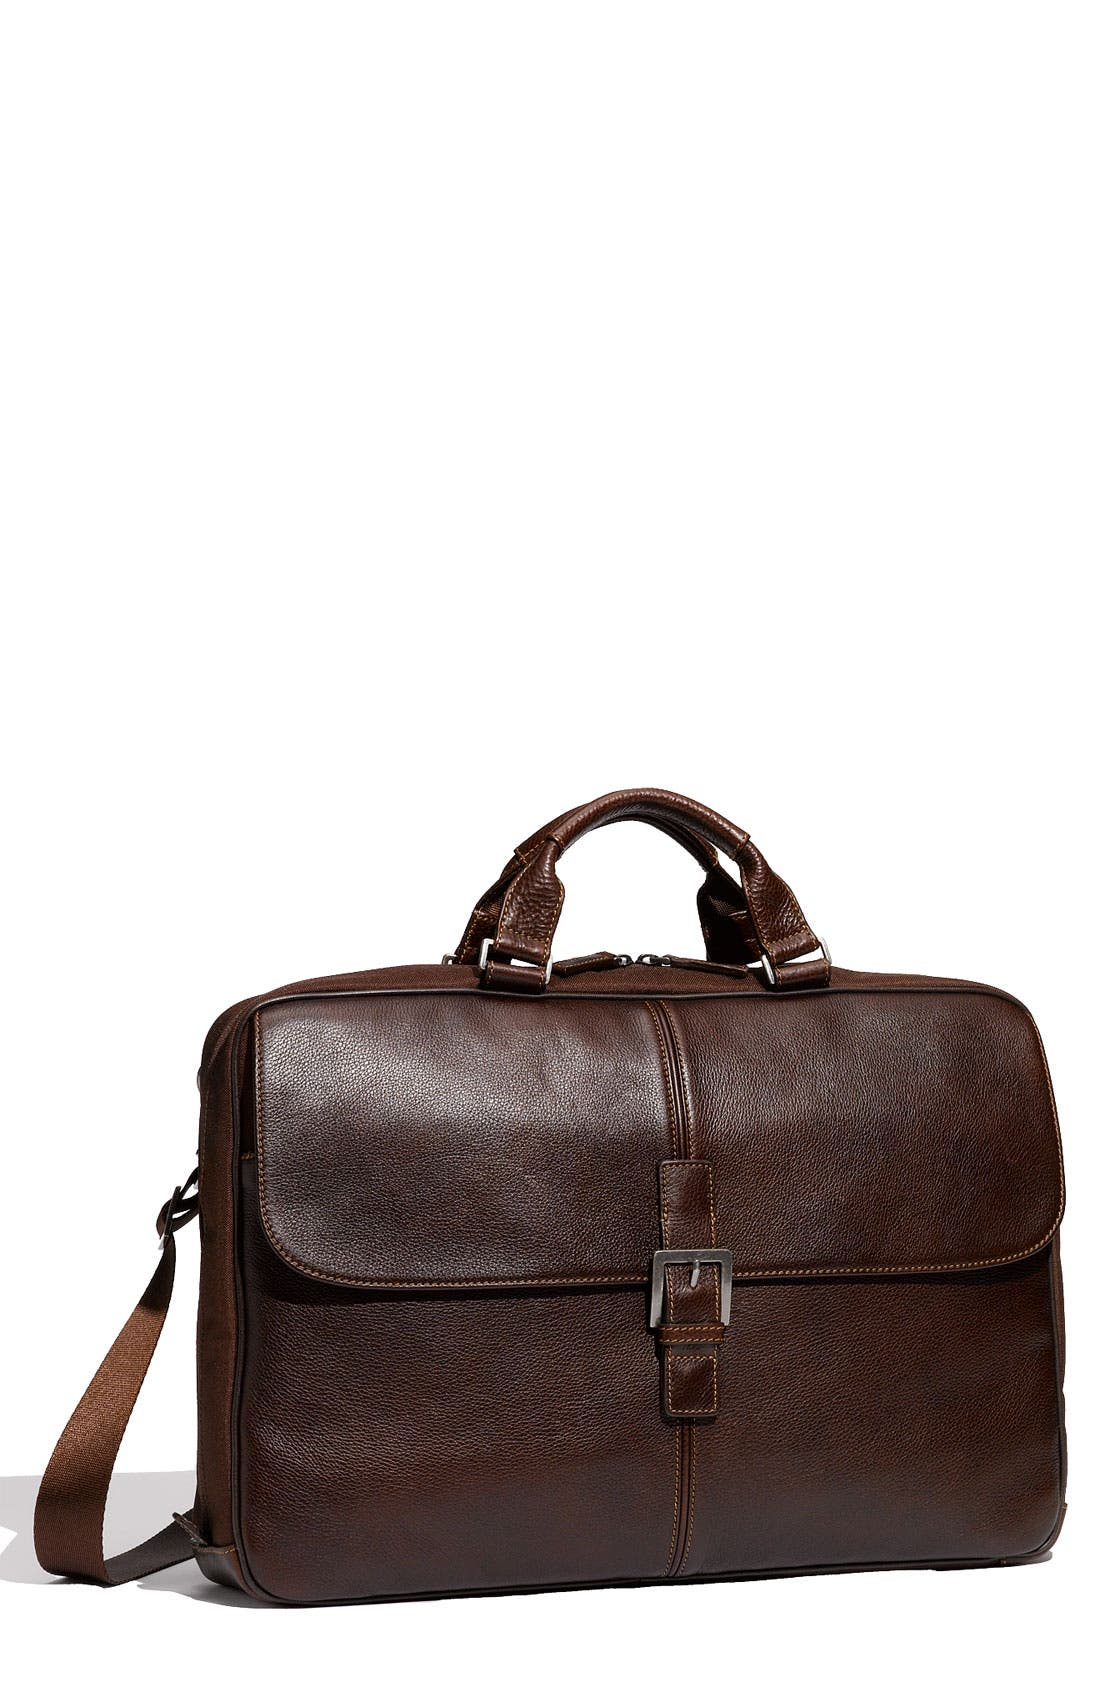 Alternate Image 1 Selected - Boconi 'Tyler - Dispatche' Tumbled Leather Briefcase